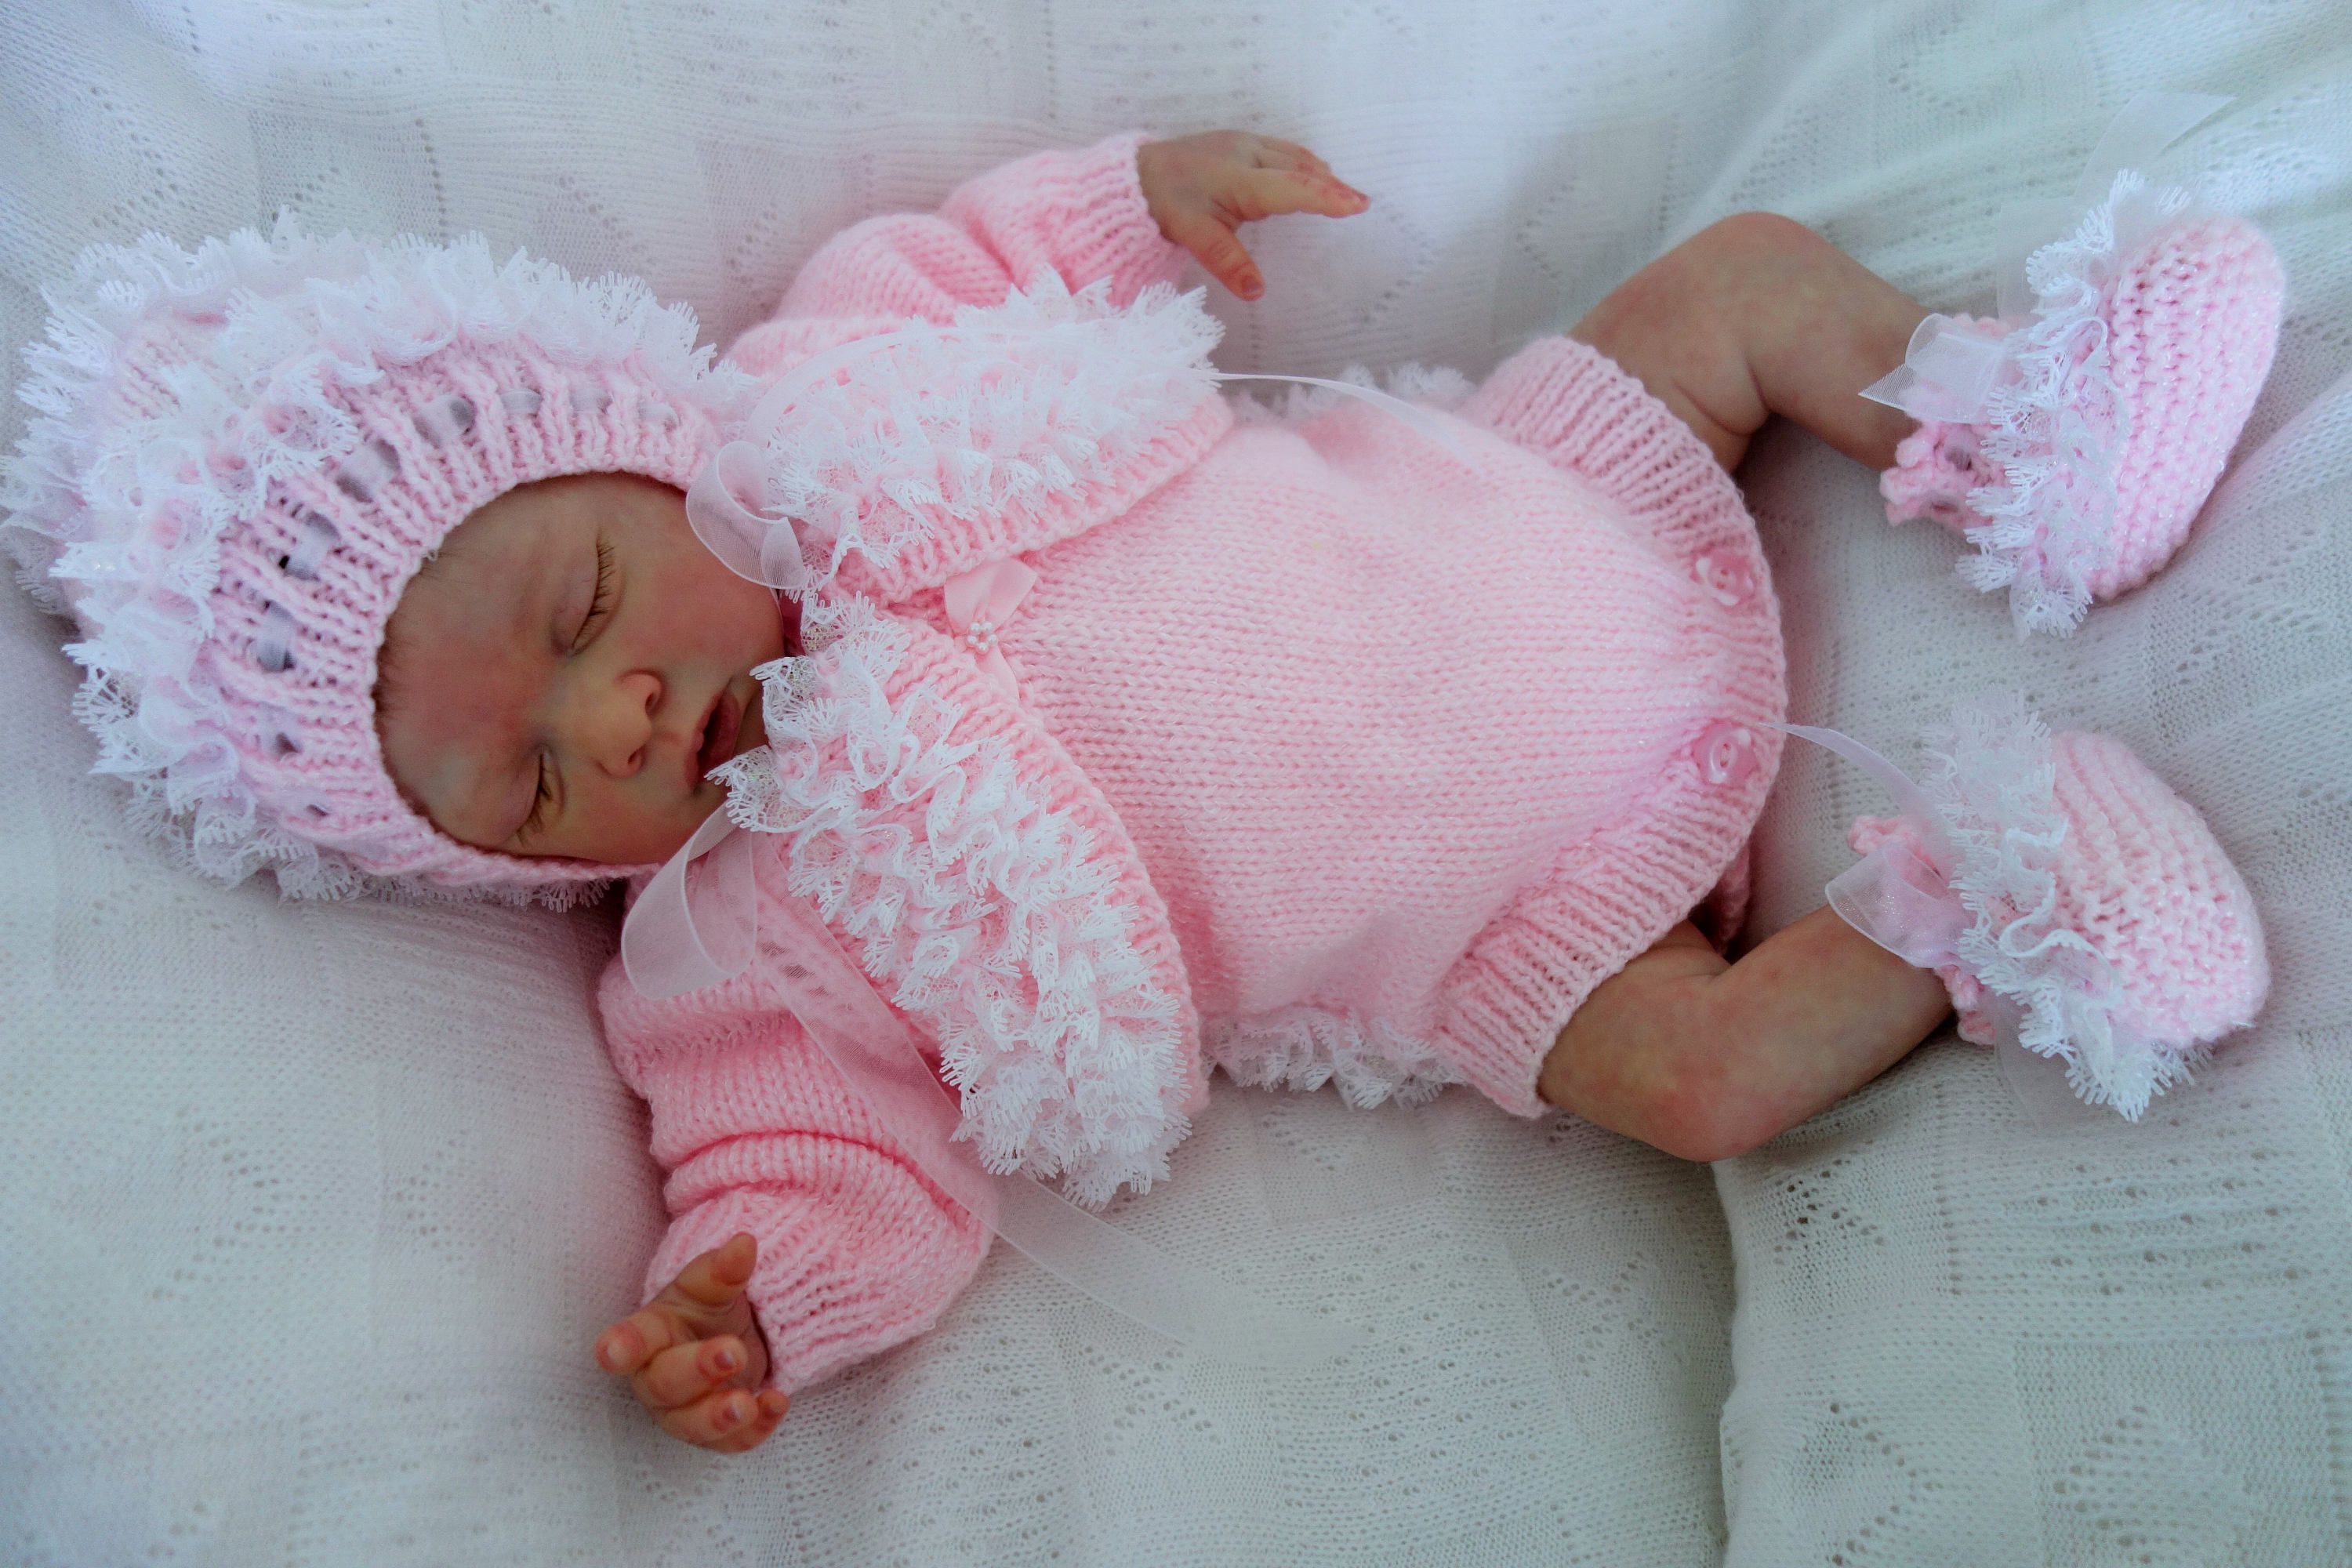 Hand knitted newborn baby girl s fancy lace trimmed pink outfit.  Bolero shrug bd33e038ba8